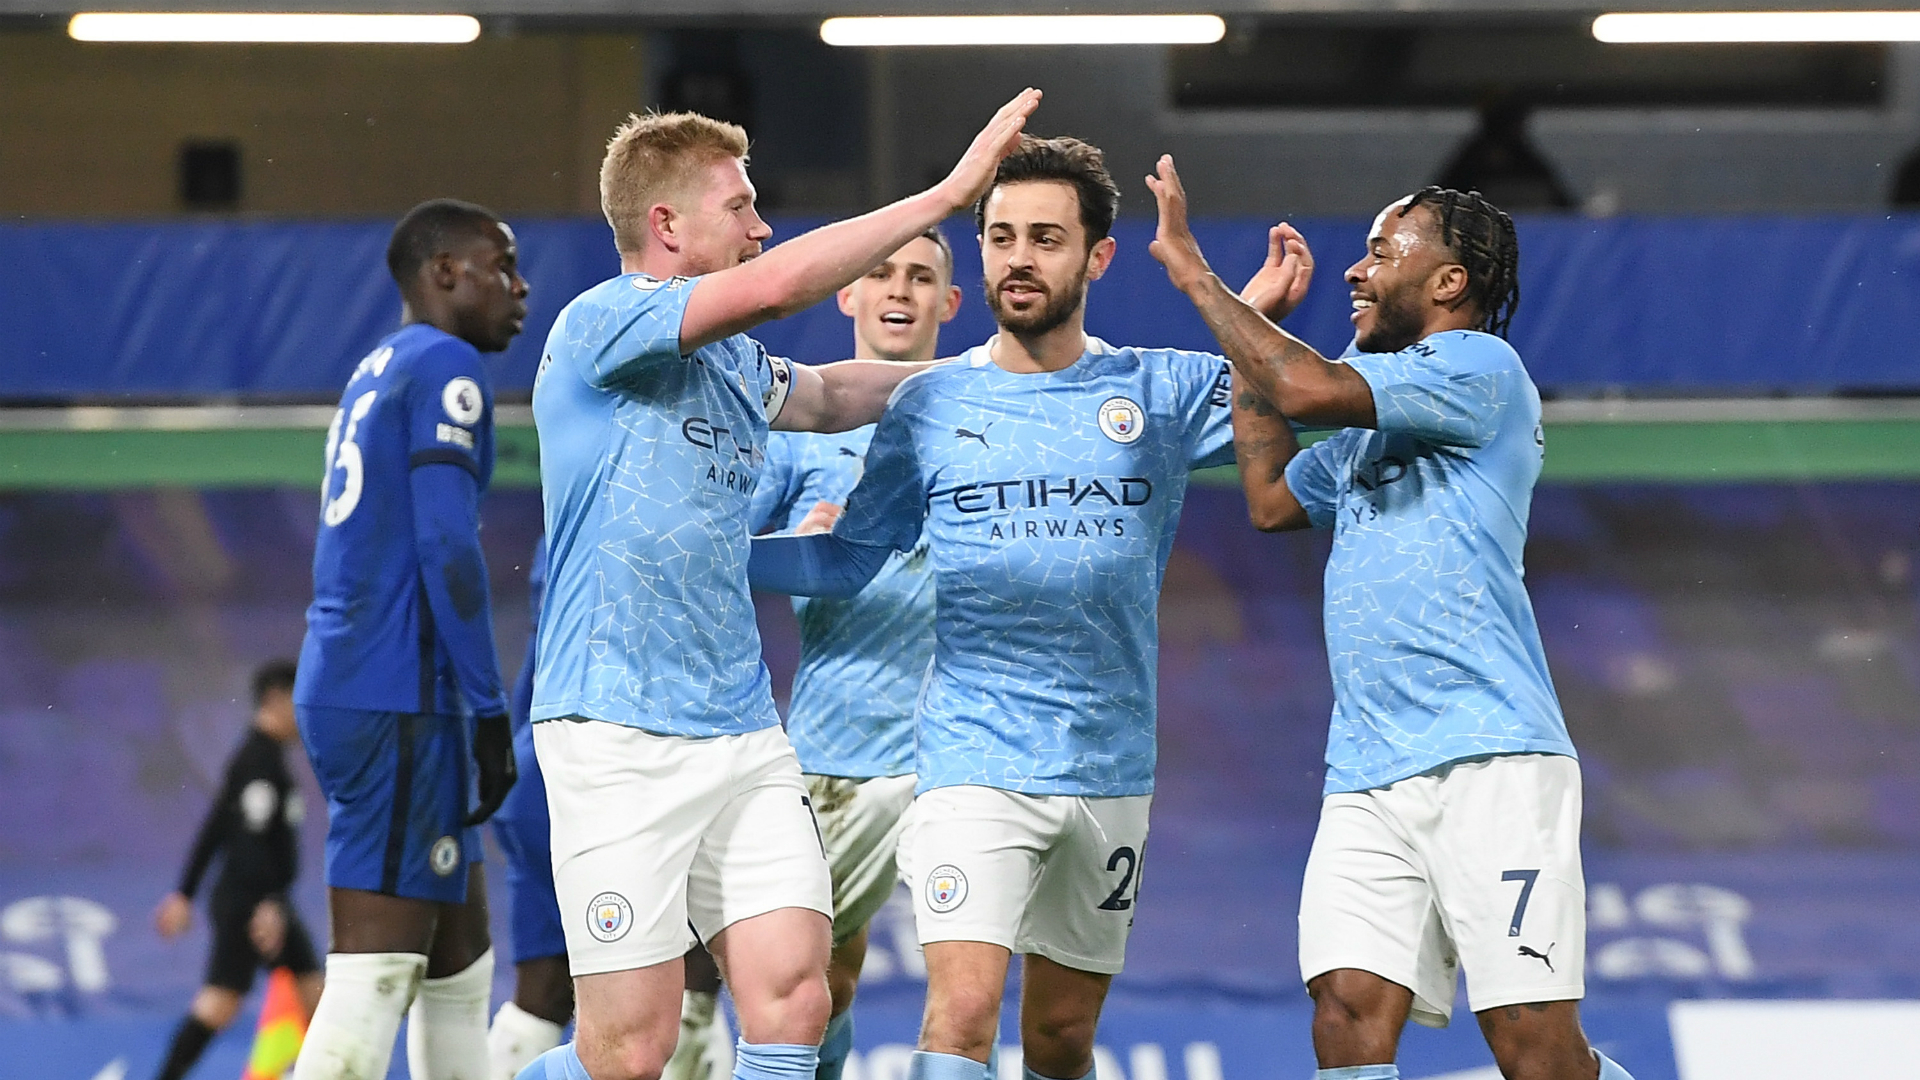 Chelsea 1-3 Manchester City: De Bruyne stars as Guardiola's side cruise to victory